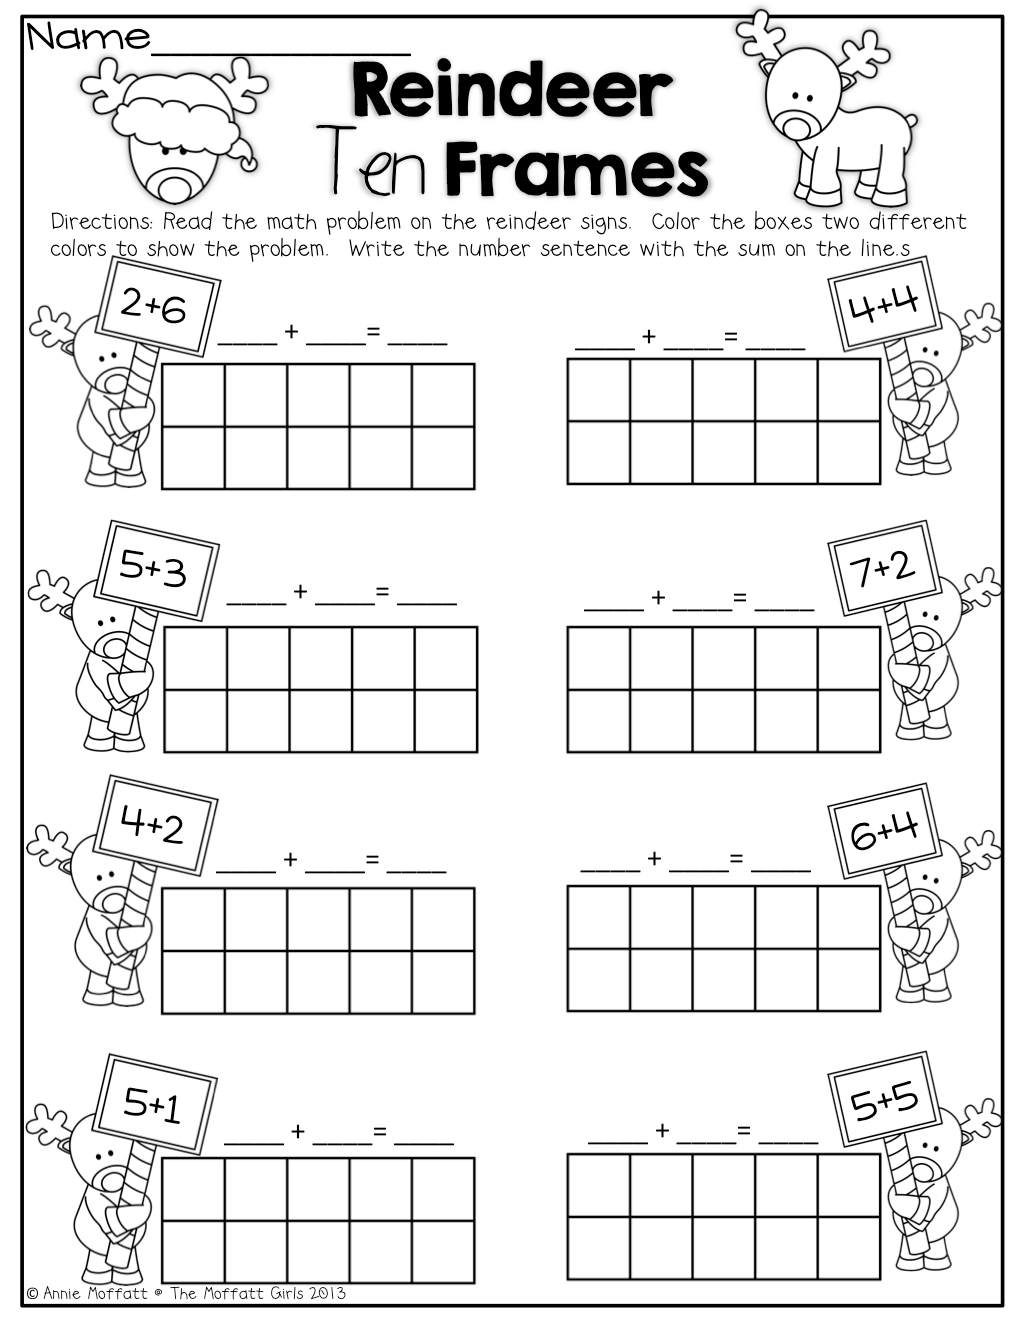 Reindeer Ten Frames Simple Math Problems With Ten Frames Teaching